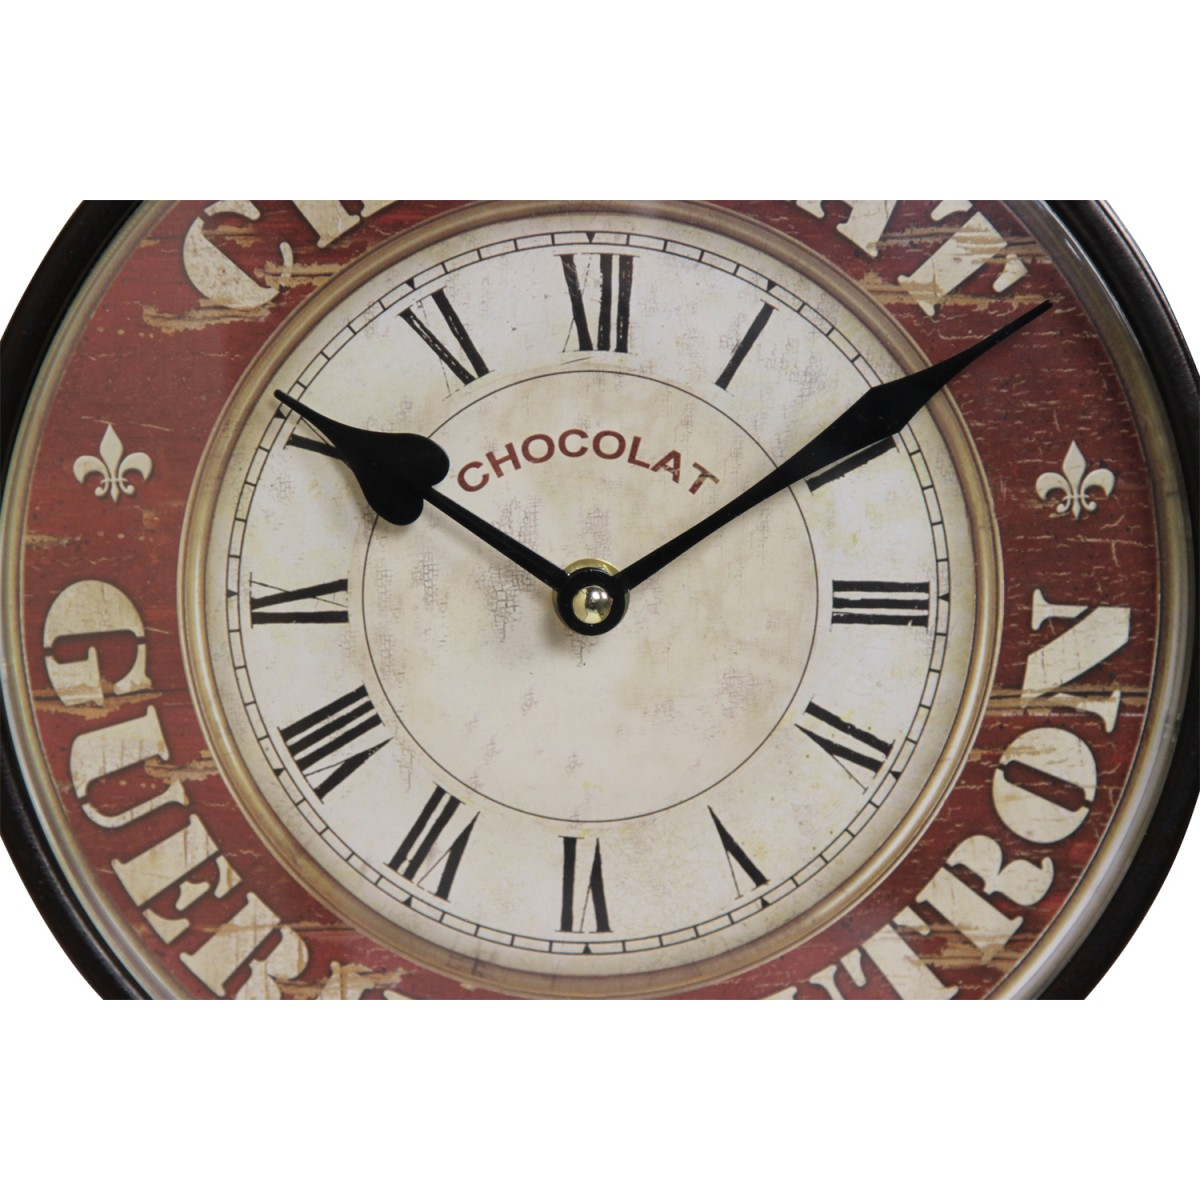 Horloge De Gare Ancienne Double Face Chocolat Guerin-Boutron Fer Forge Rouge-Bordeaux 24cm